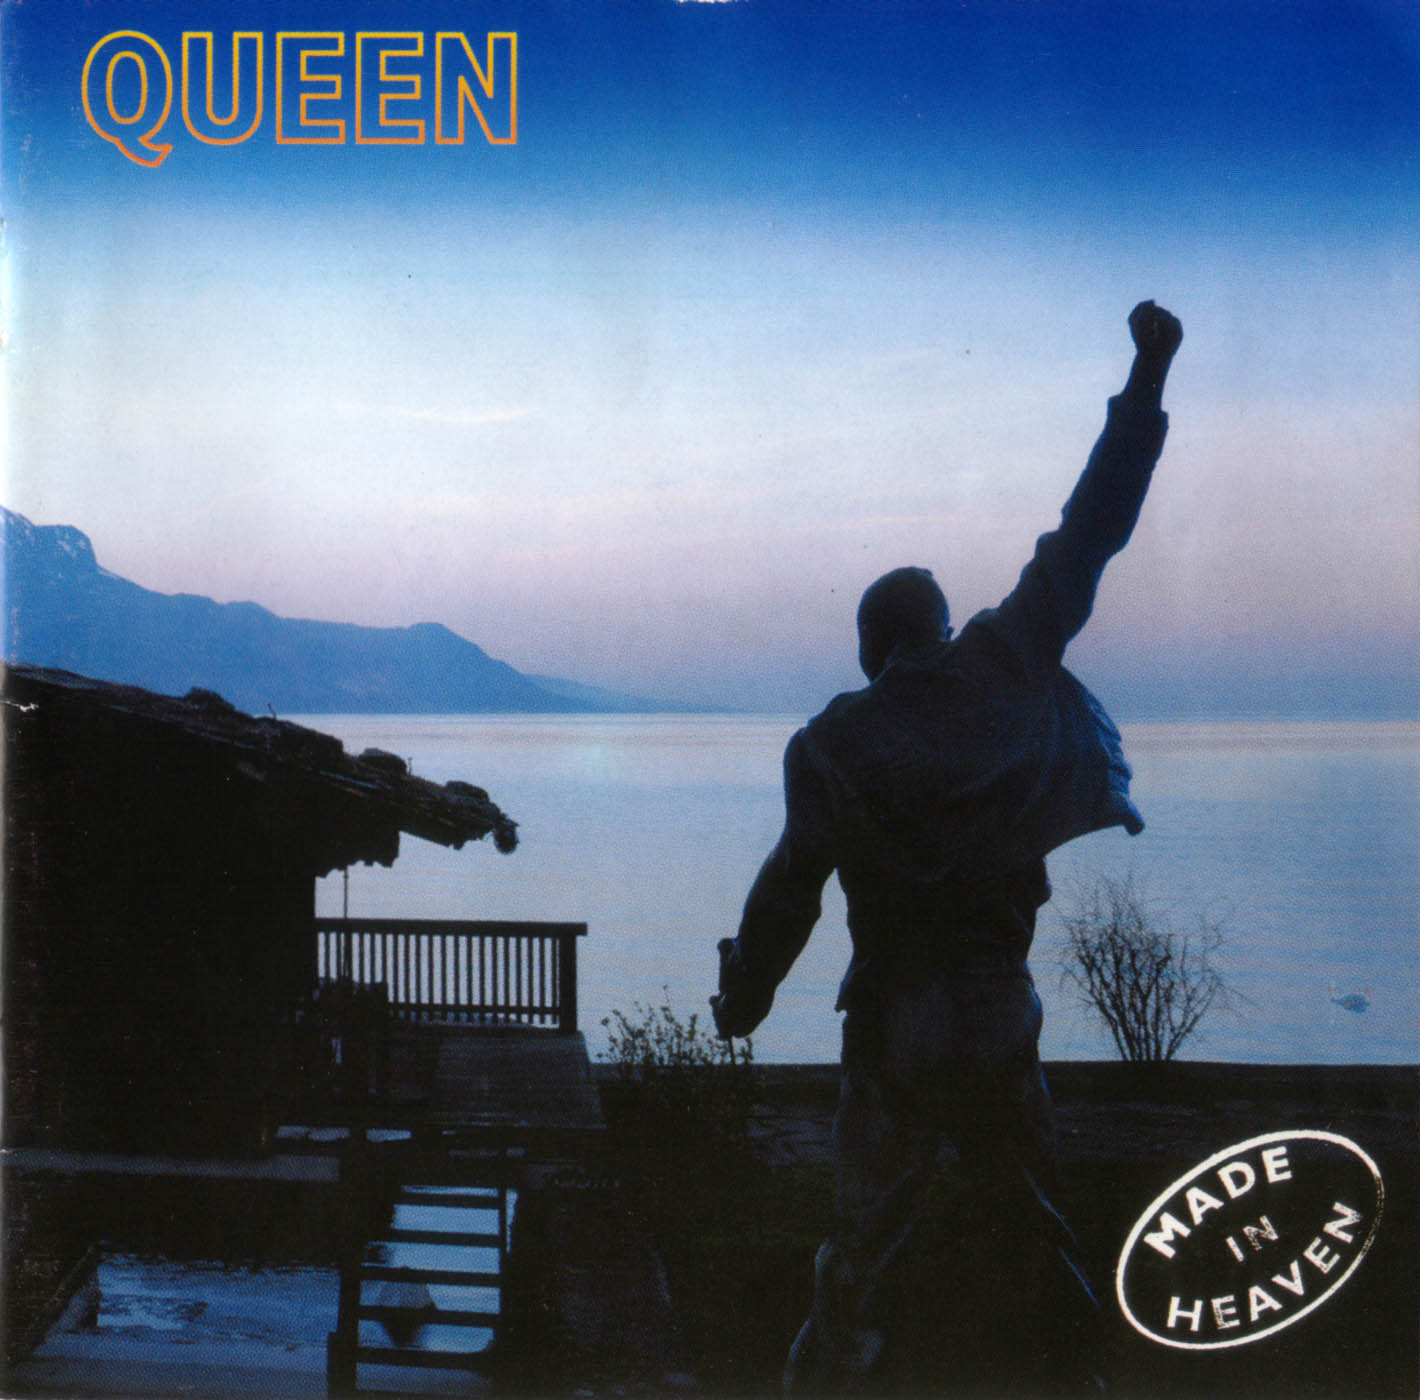 Made in heaven (Deluxe edition)